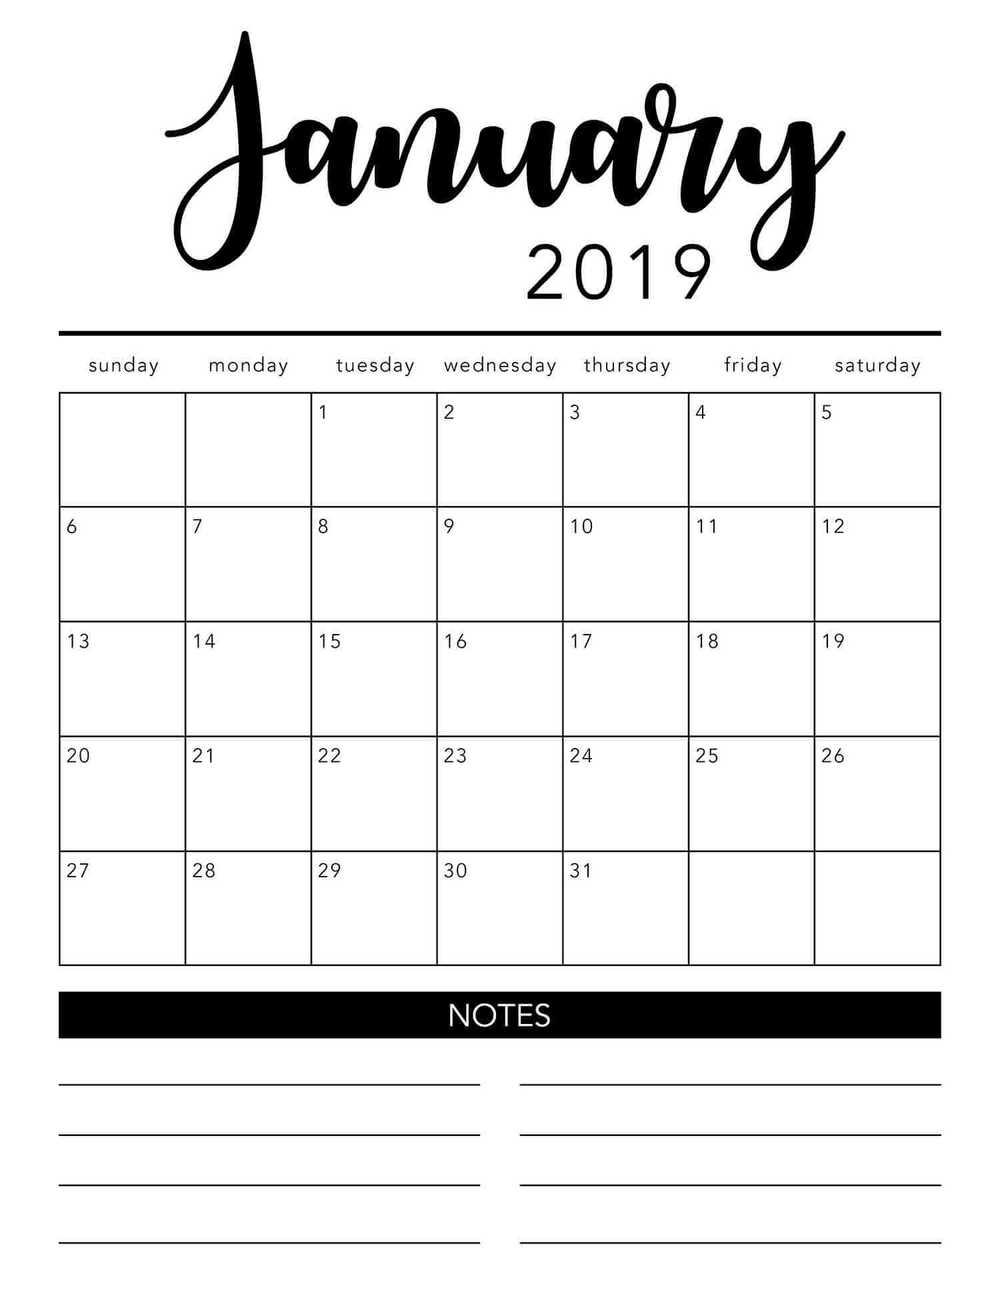 Free 2019 Printable Calendar Template (2 Colors!) - I Heart Naptime intended for I Heart Naptime Calendar 2020